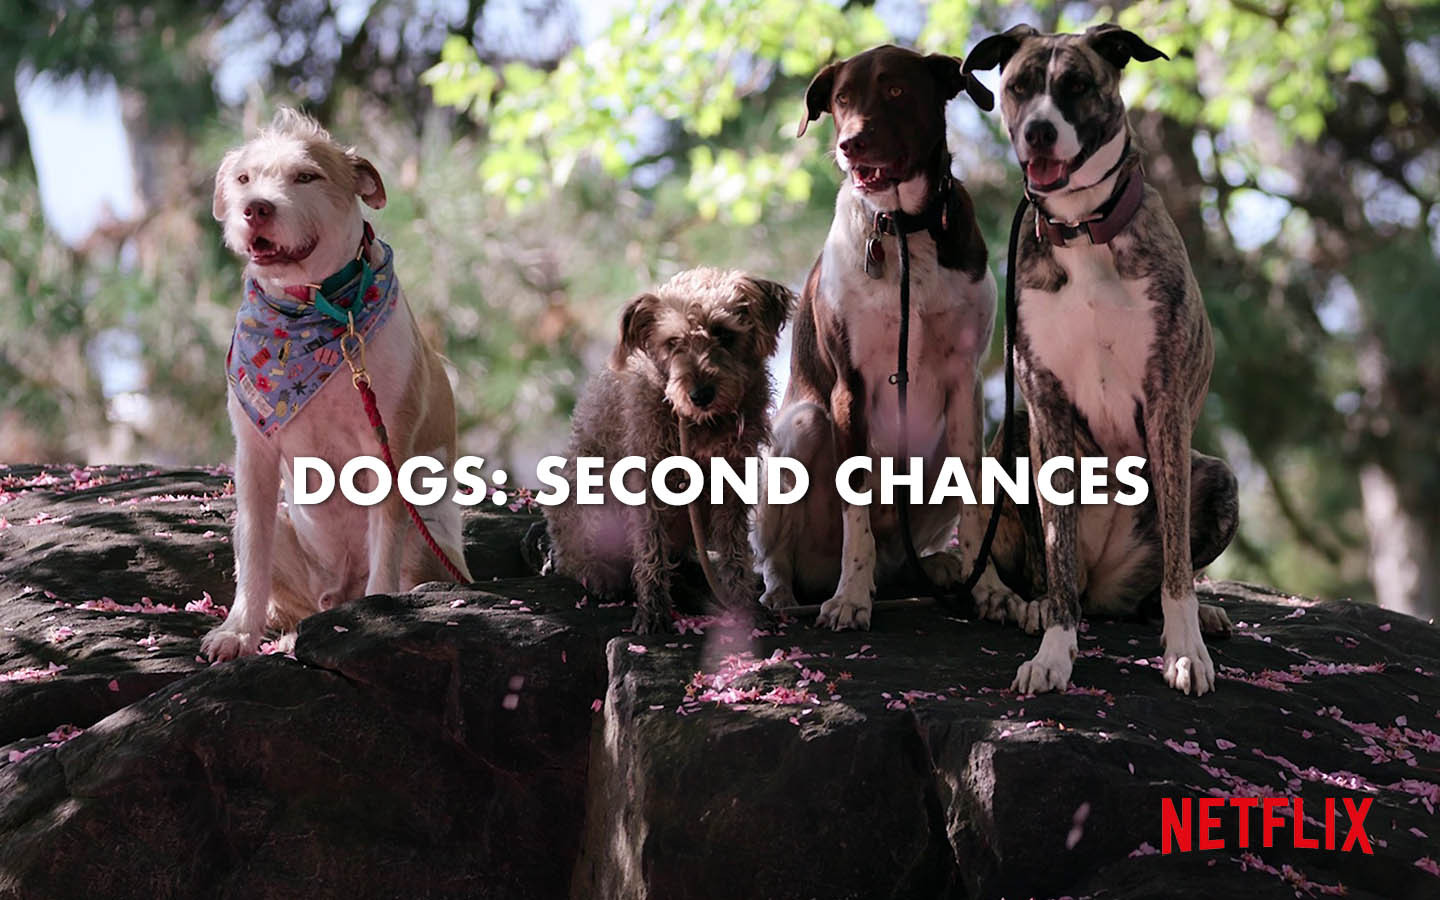 DOGS: SECOND CHANCES